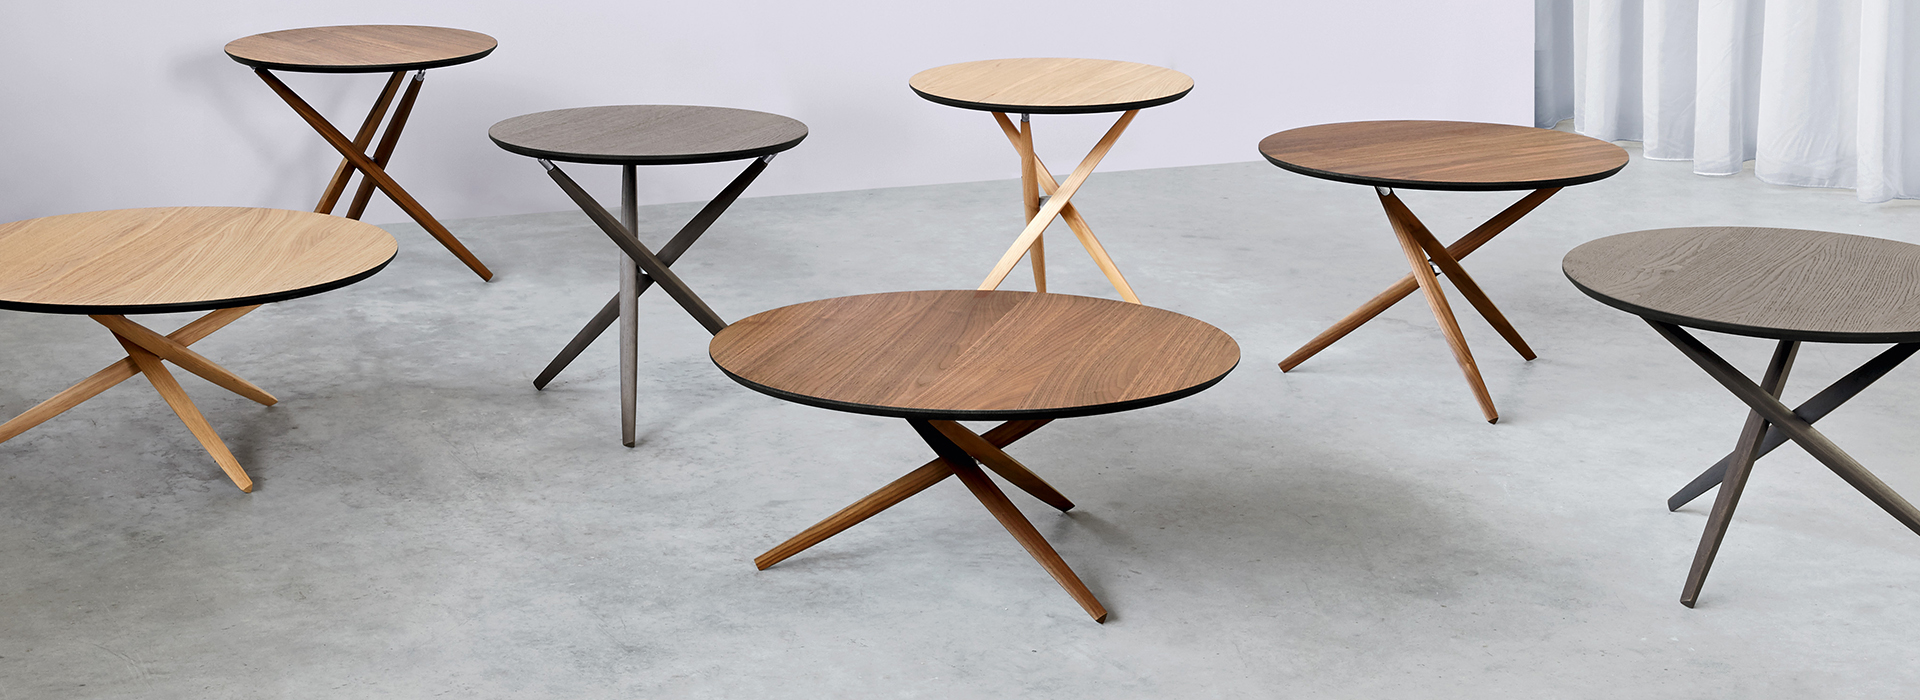 Pico Wood Table